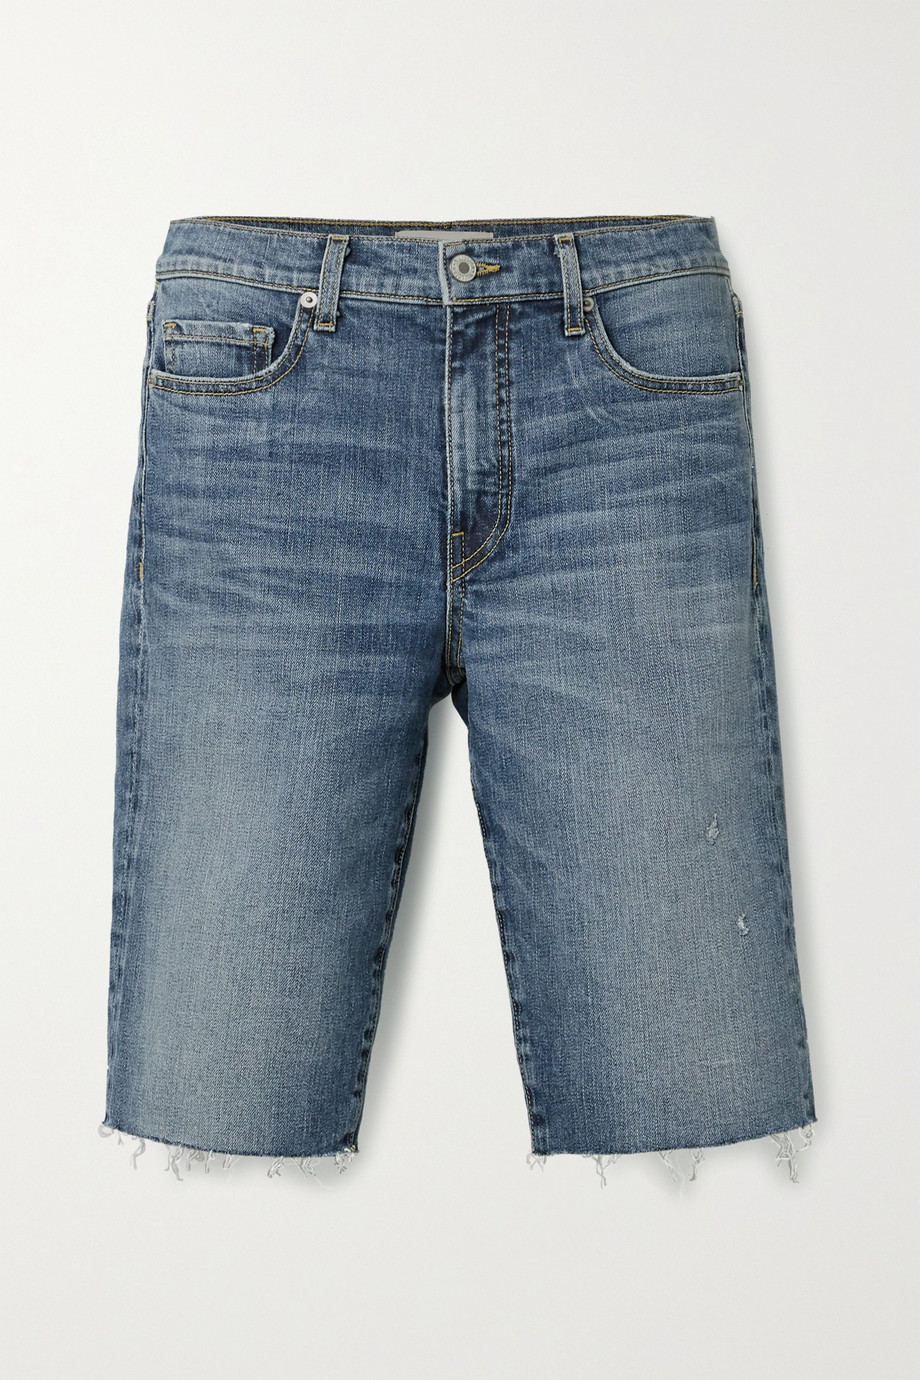 Nili Lotan Sydney Jeansshorts in Distressed-Optik